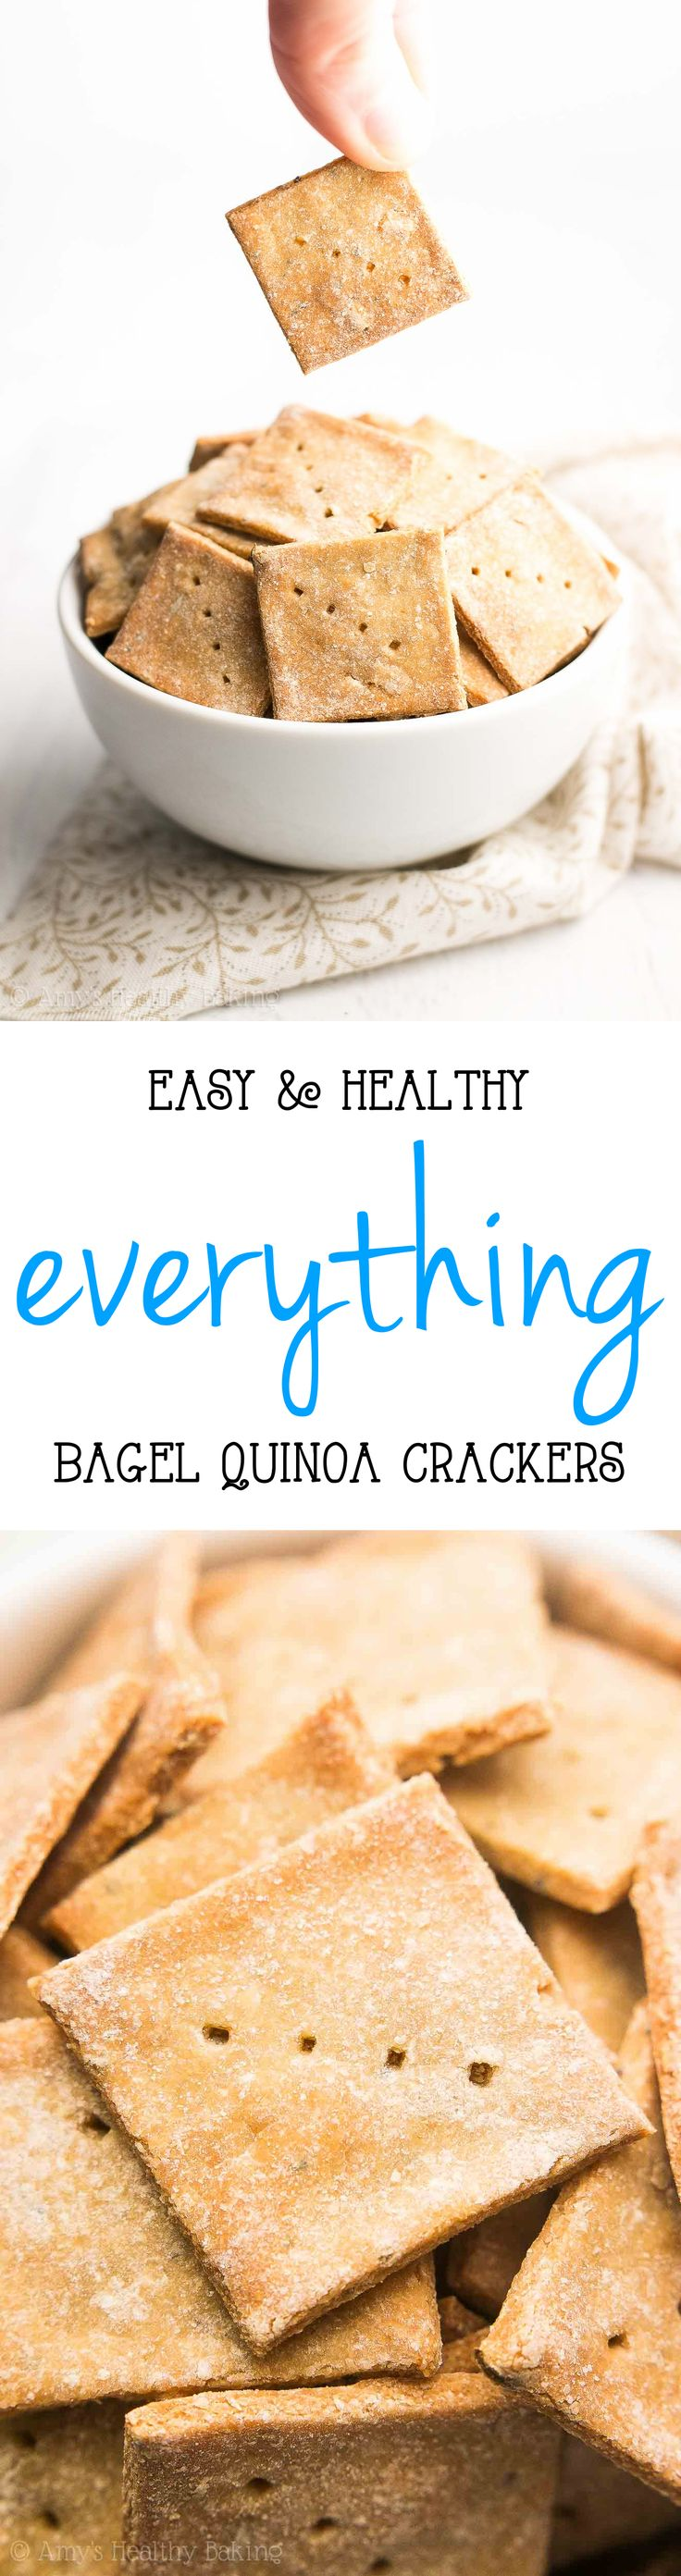 Healthy Everything Bagel Quinoa Crackers -- crunchy, irresistible & SO easy to make! My all-time FAVORITE crackers! They're so much better than anything store-bought!!